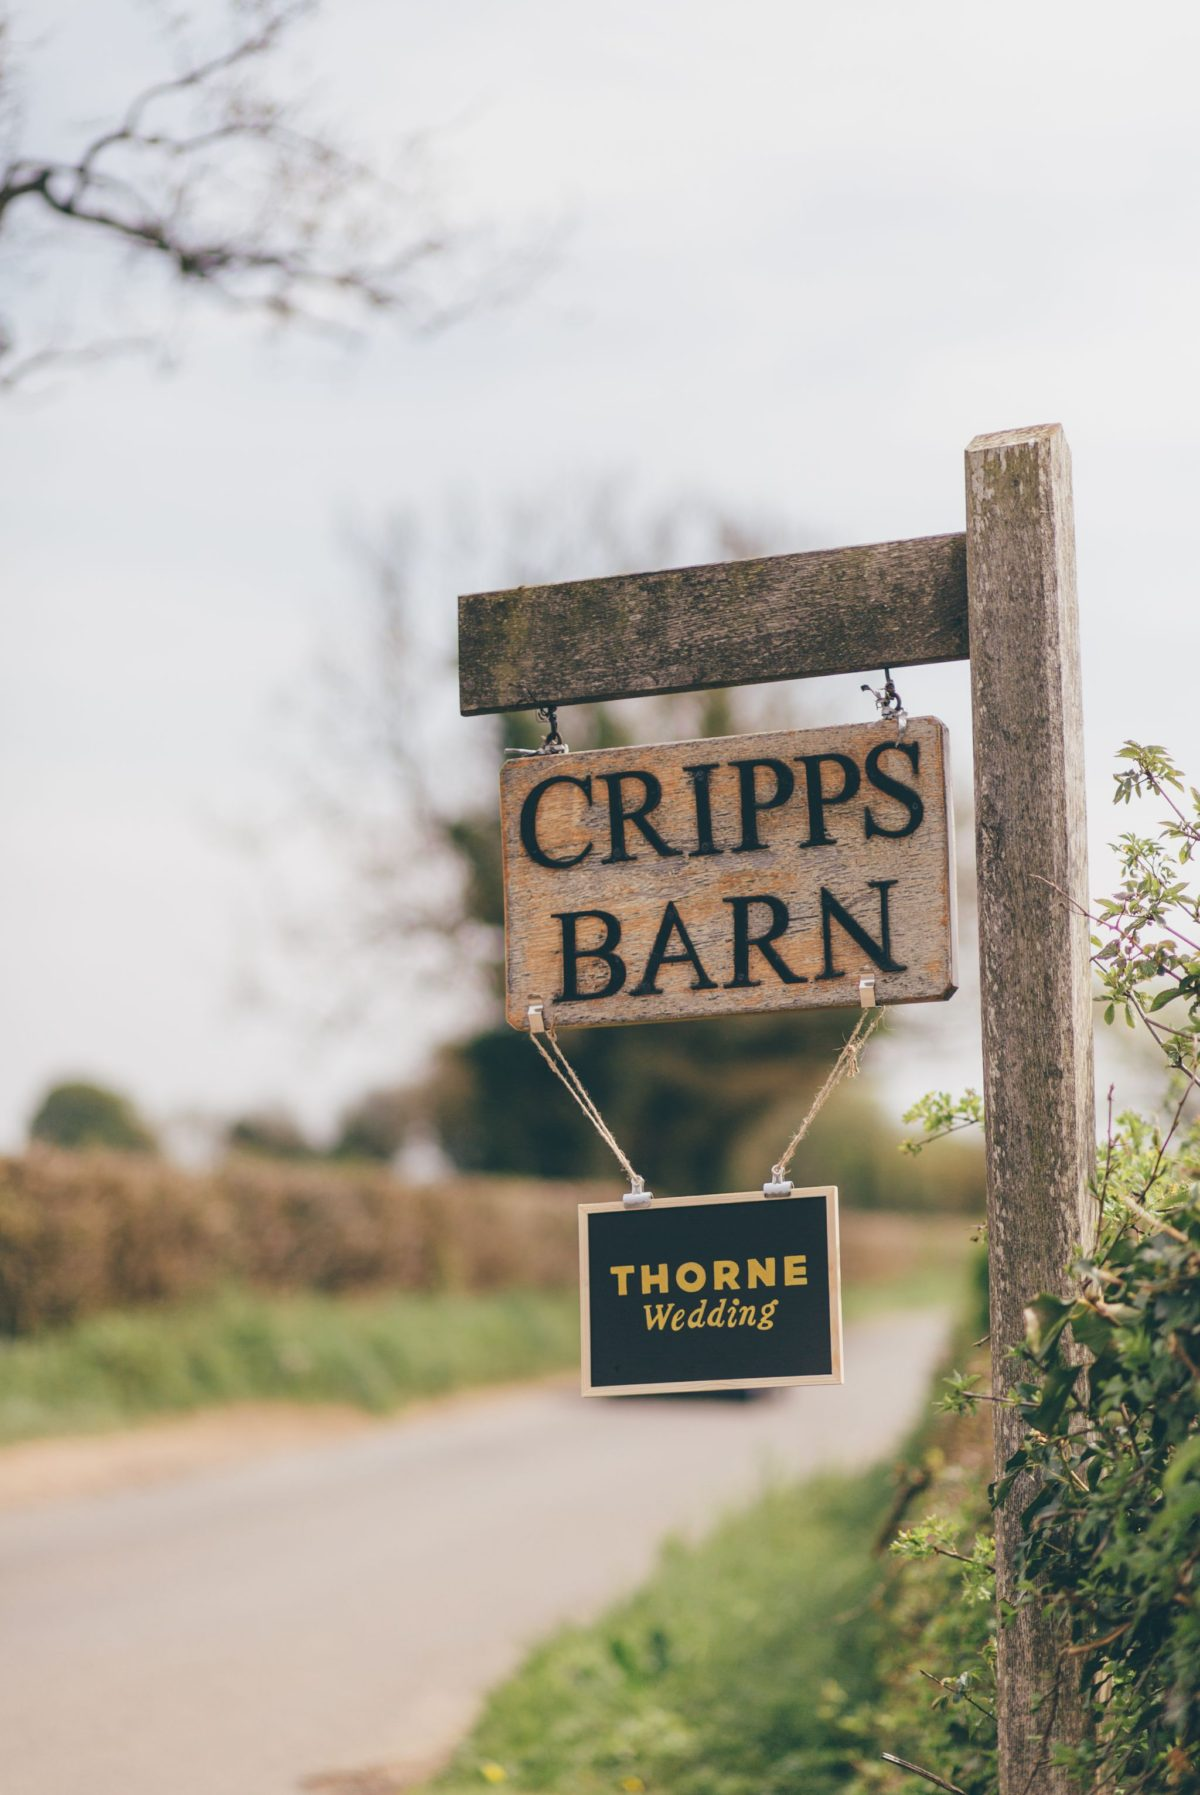 cripps_barn_gloucesterhsire_welsh_wedding_photographer_rachel_lambert_photography_jordan_amy_ 27